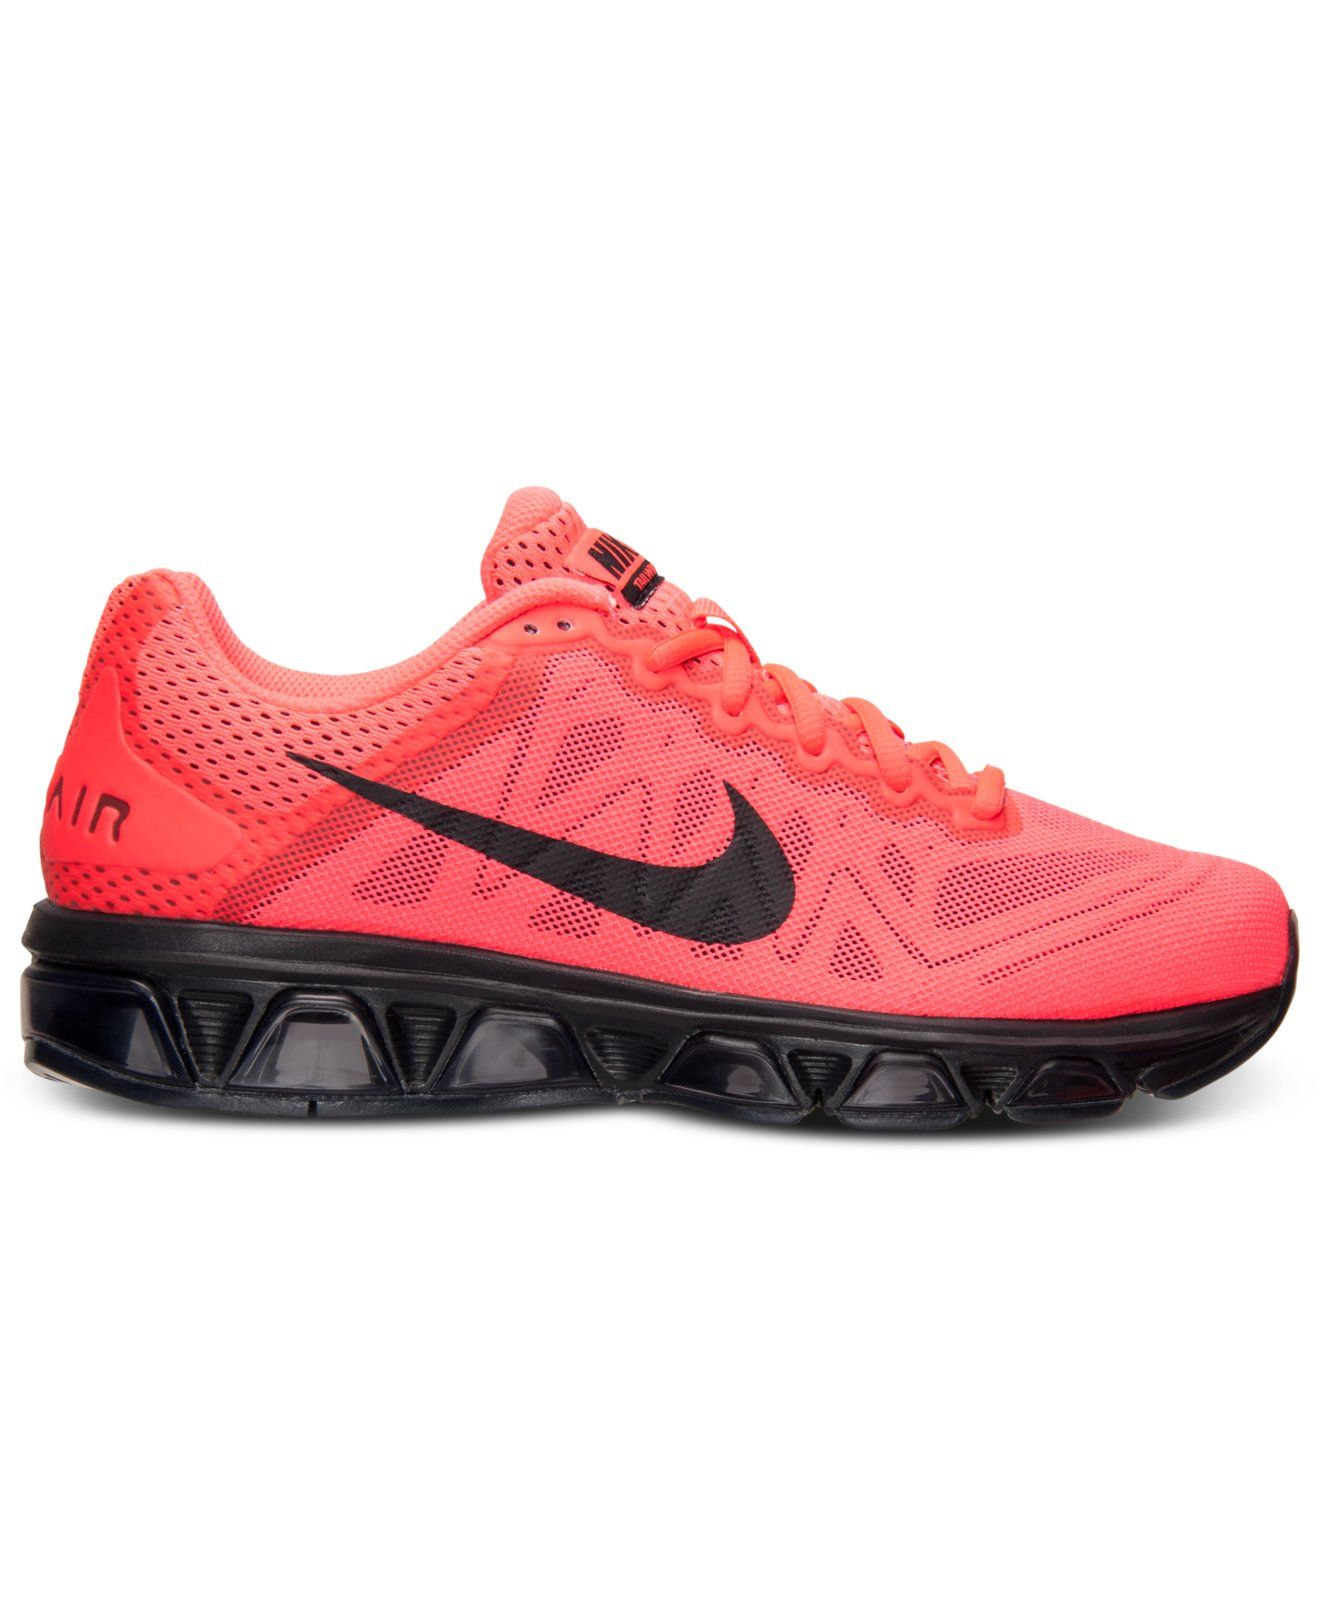 finest selection 841d1 f6b0c Sporty and pink and cute all over — Nike Air Max Tailwind 7 running sneakers